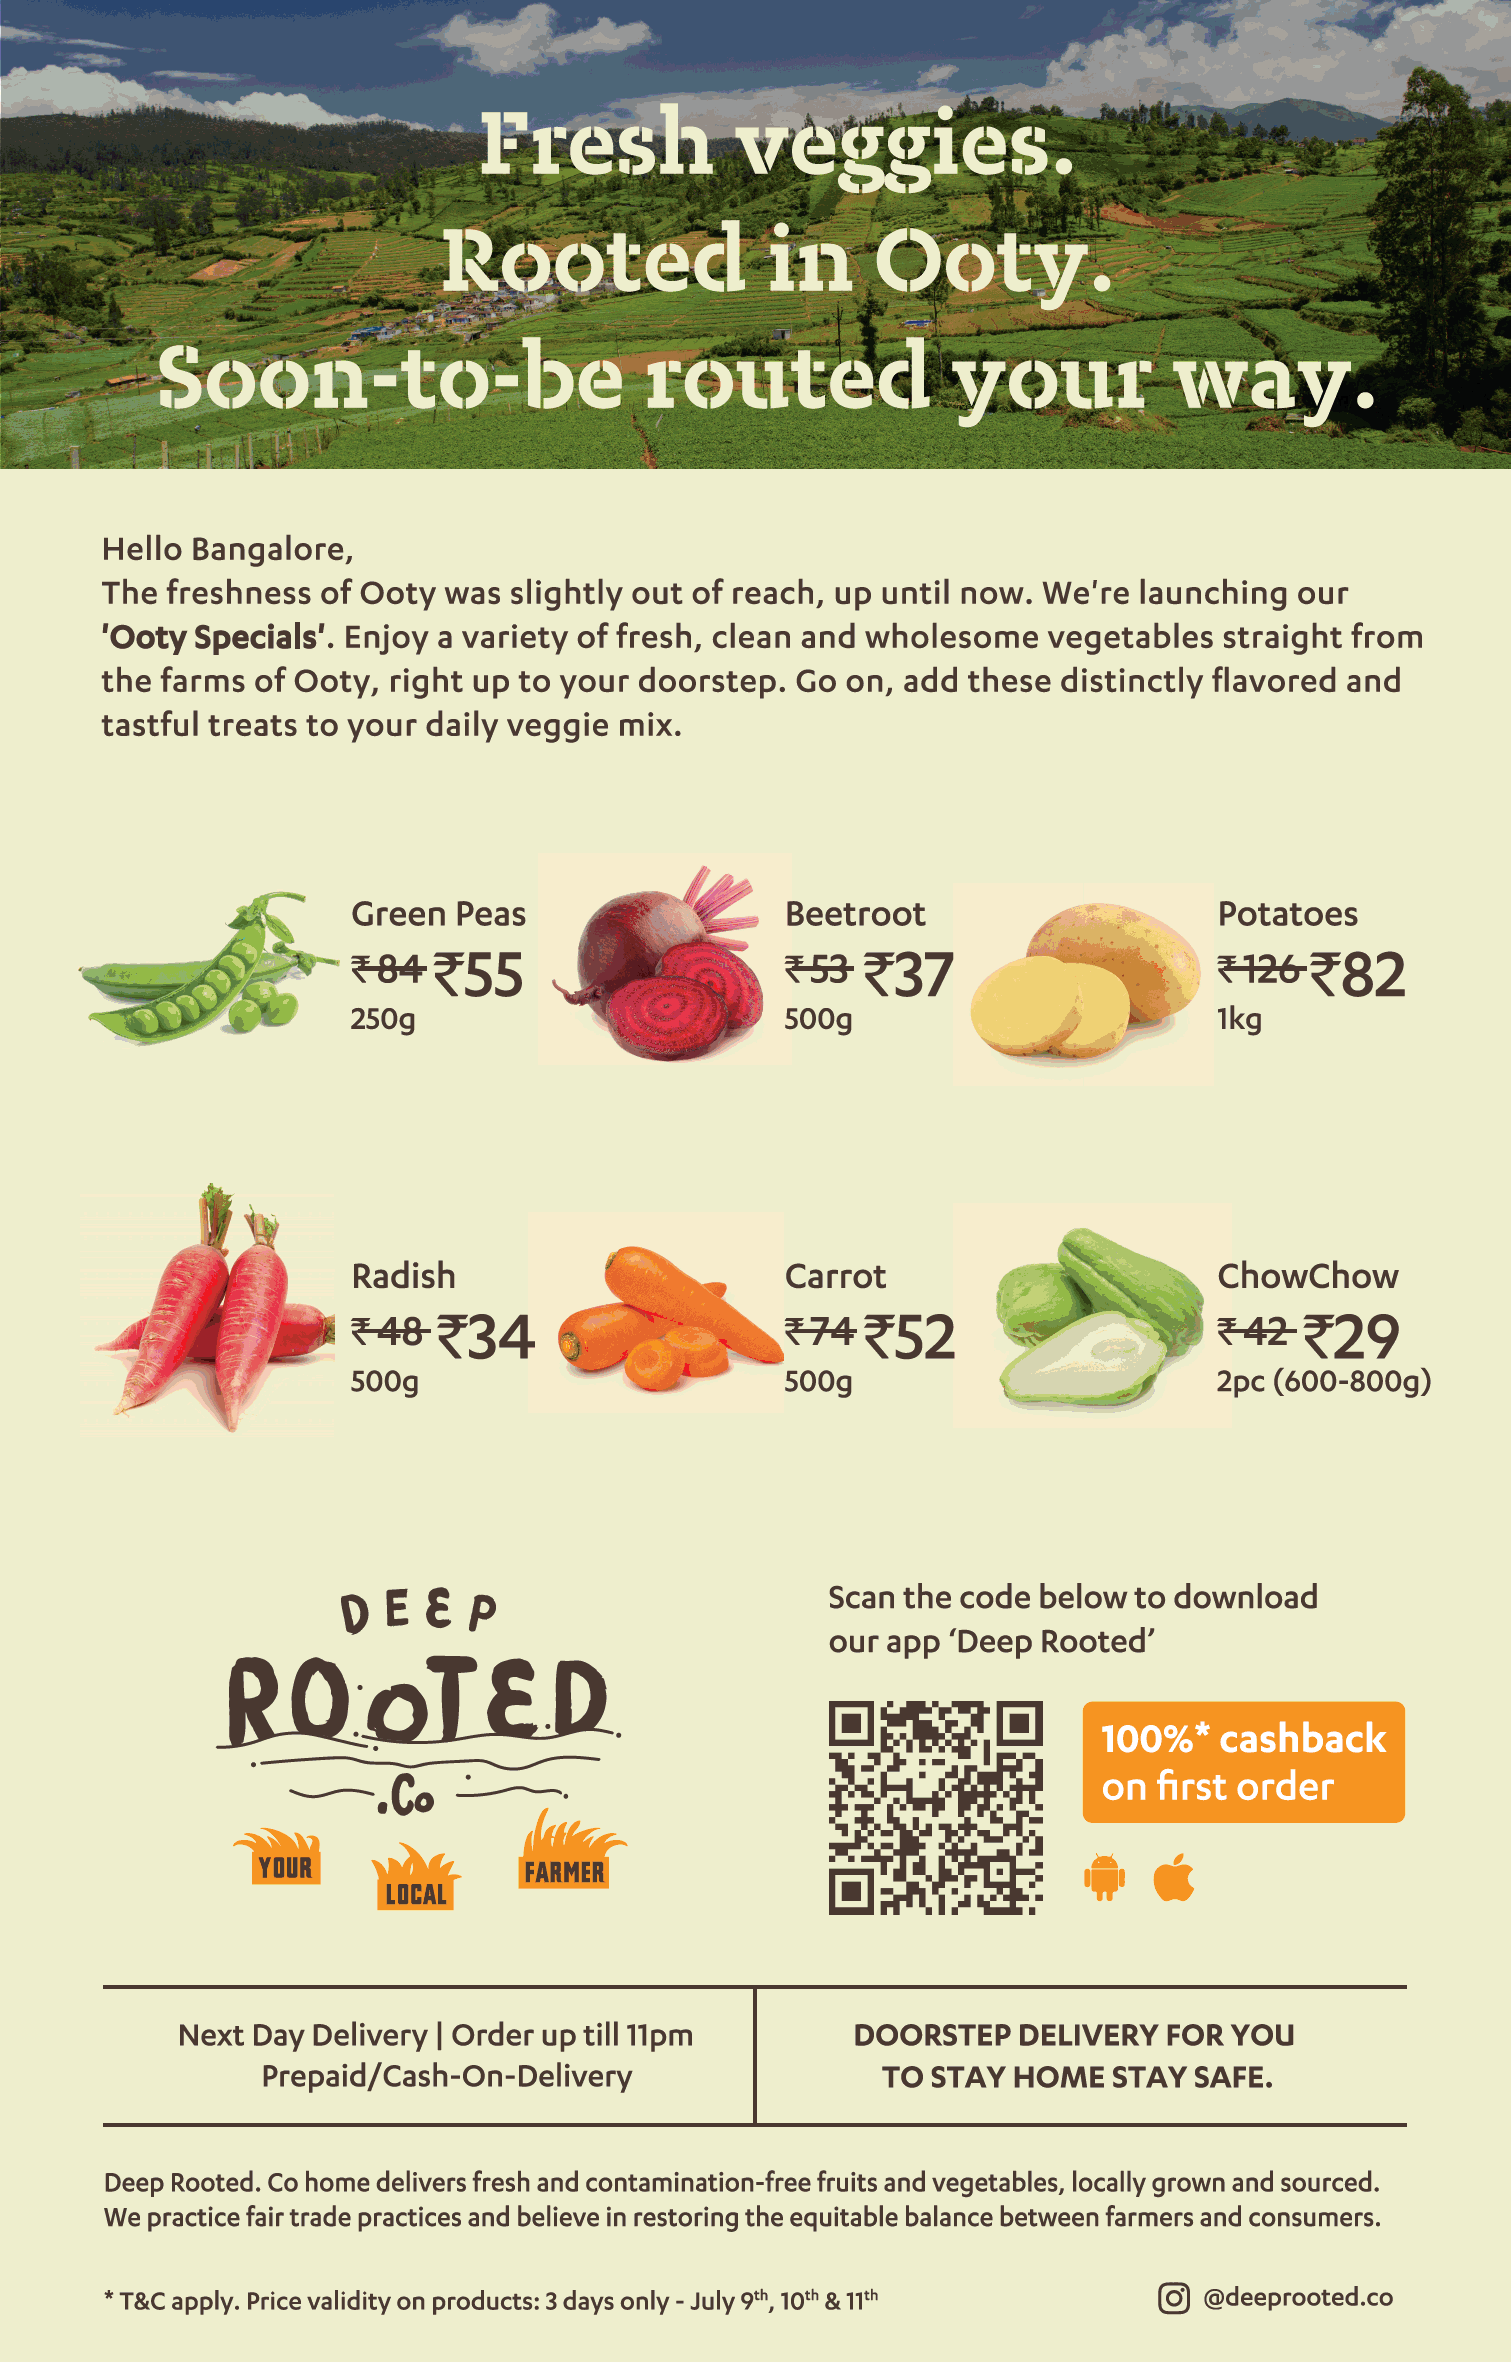 deep-rooted-co-fresh-veggies-rooted-in-ooty-soon-to-be-routed-your-way-ad-times-of-india-bangalore-9-7-2021